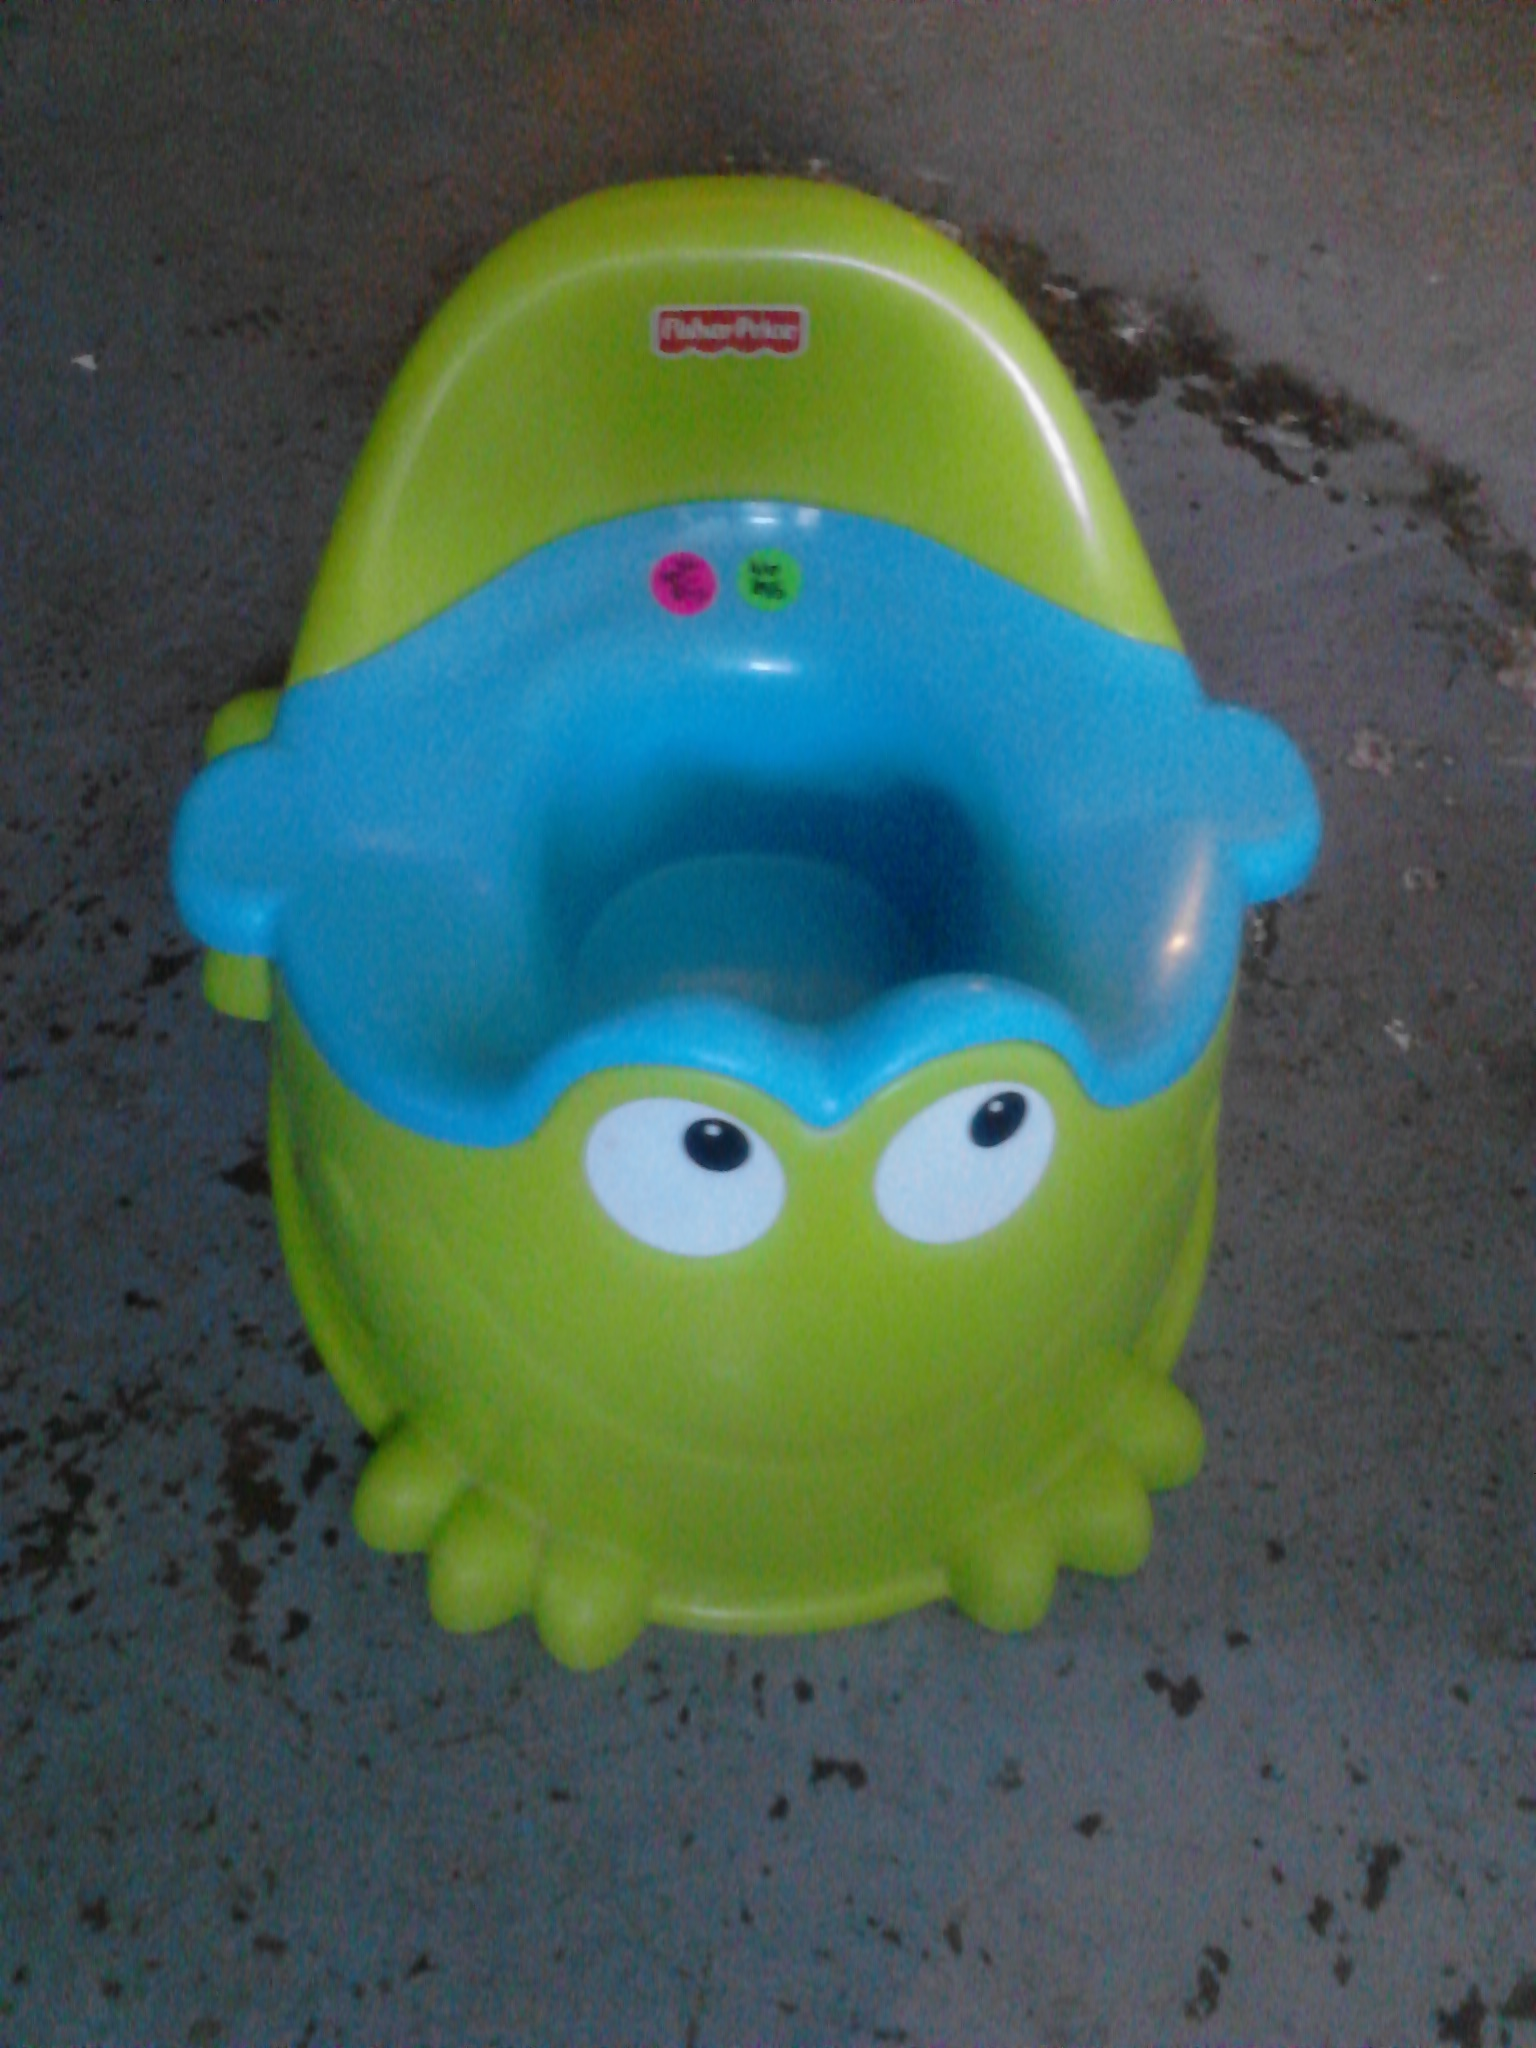 Example number one:: a potty. I was having a yard sale. The potty is long gone. WHY DID I KEEP THIS PICTURE OF A POTTY? It's going to the trash. Please, do this for your sanity and someone's sanity one day. GET RID OF THE POTTY PICTURE so they don't have to look through them all!